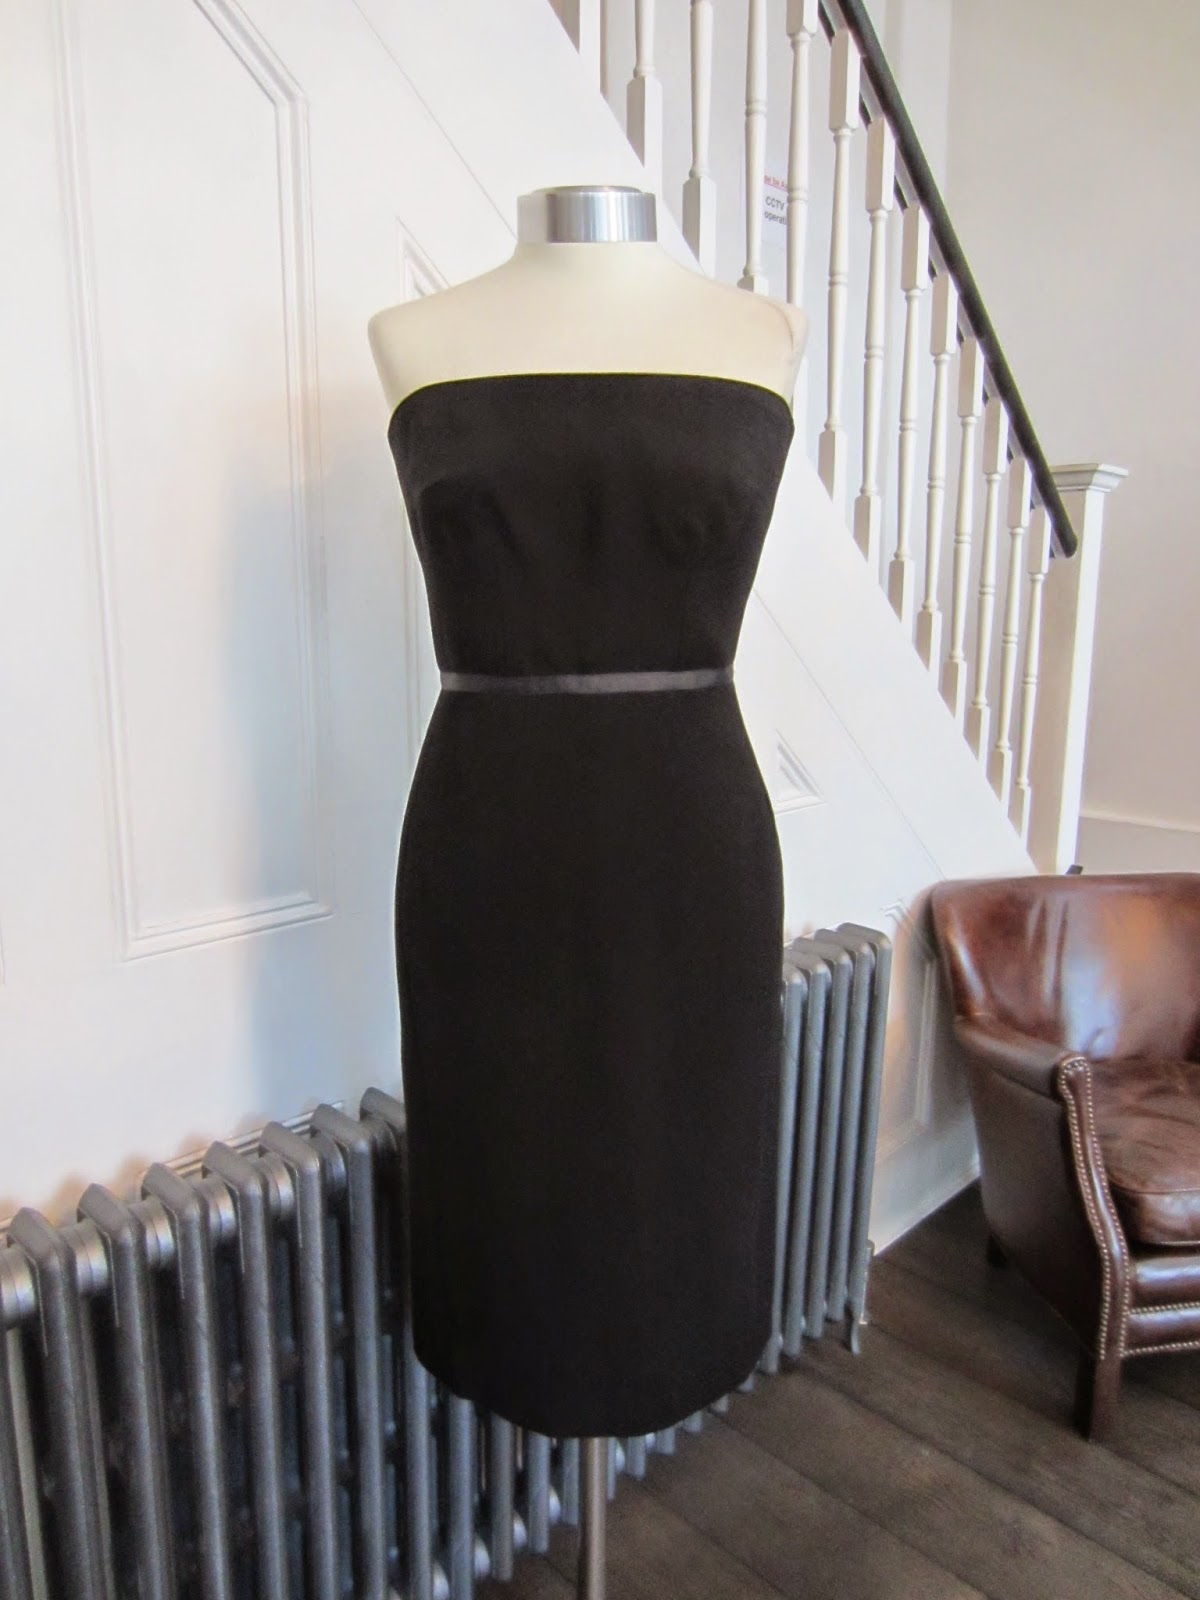 Jasper Conran Black Strapless Cocktail Dress